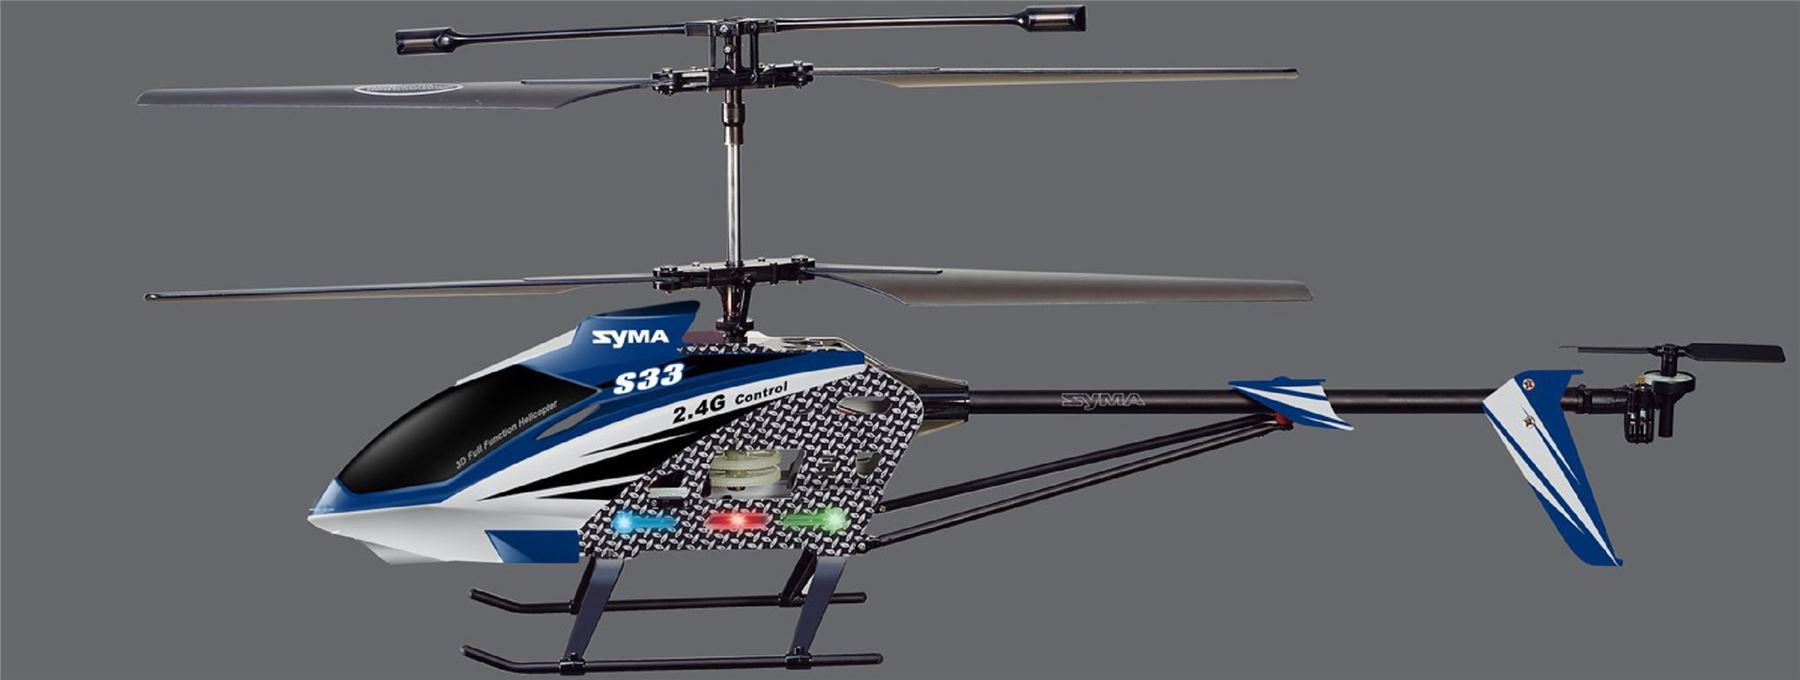 s33 remote control helicopter with 350816814213 on 262869650971 likewise 262869650971 also 262869650971 in addition 252785040937 furthermore 350816814213.